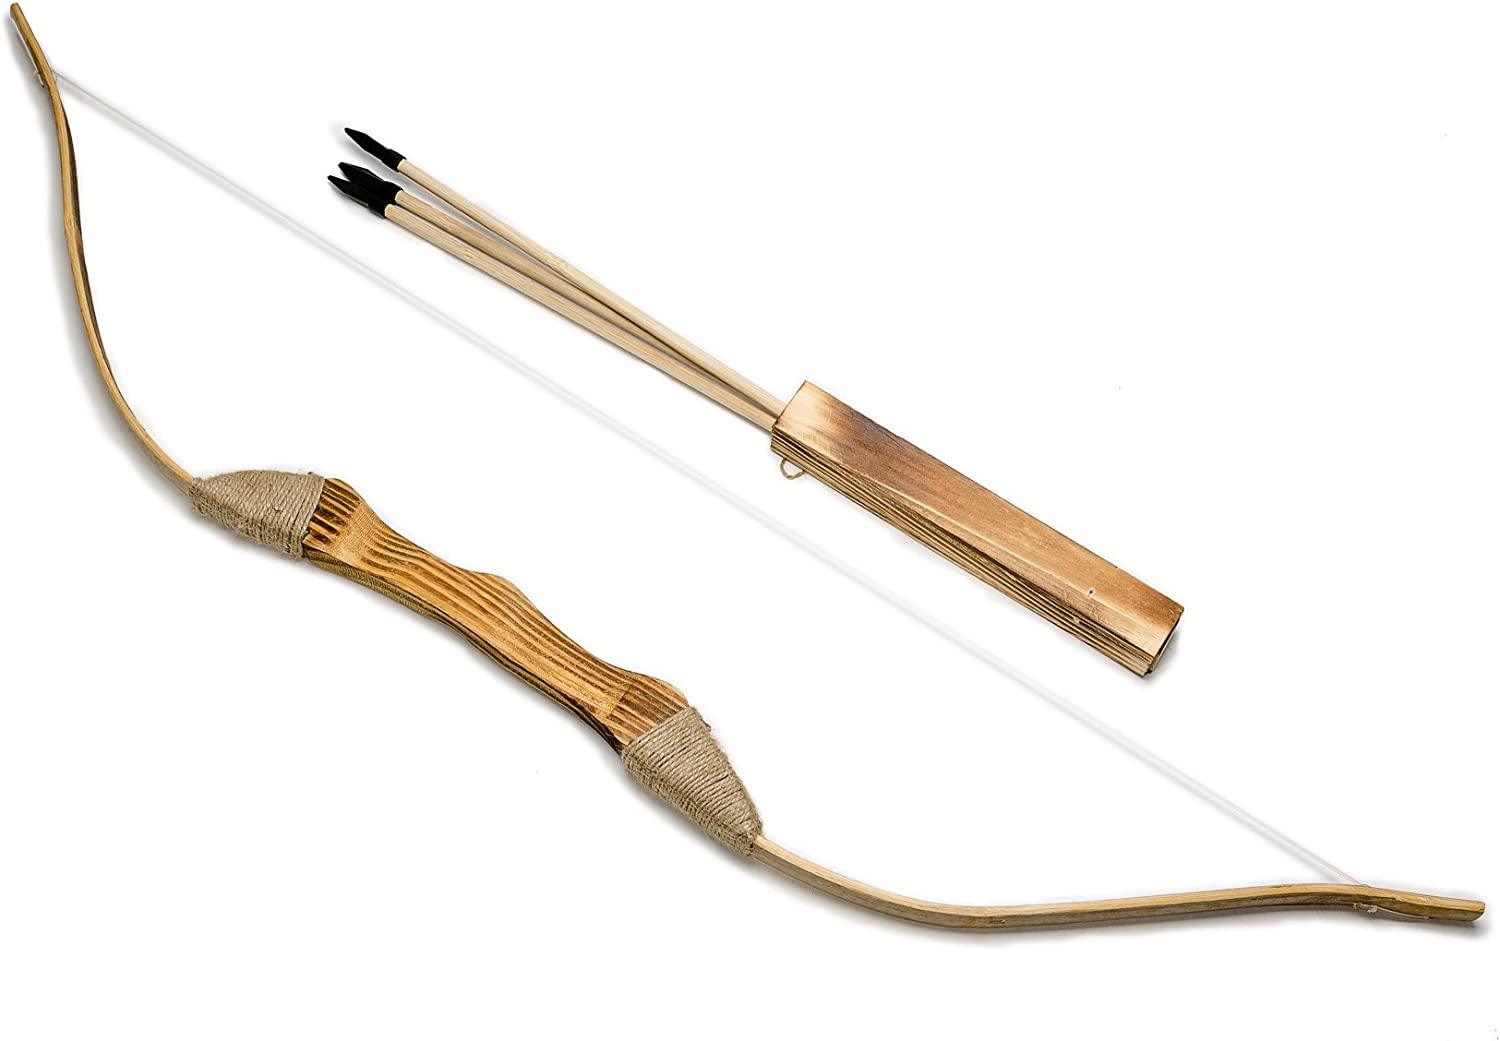 39in Quiver and Arrows Archery for Kids Wooden Rustic Bow 99cm